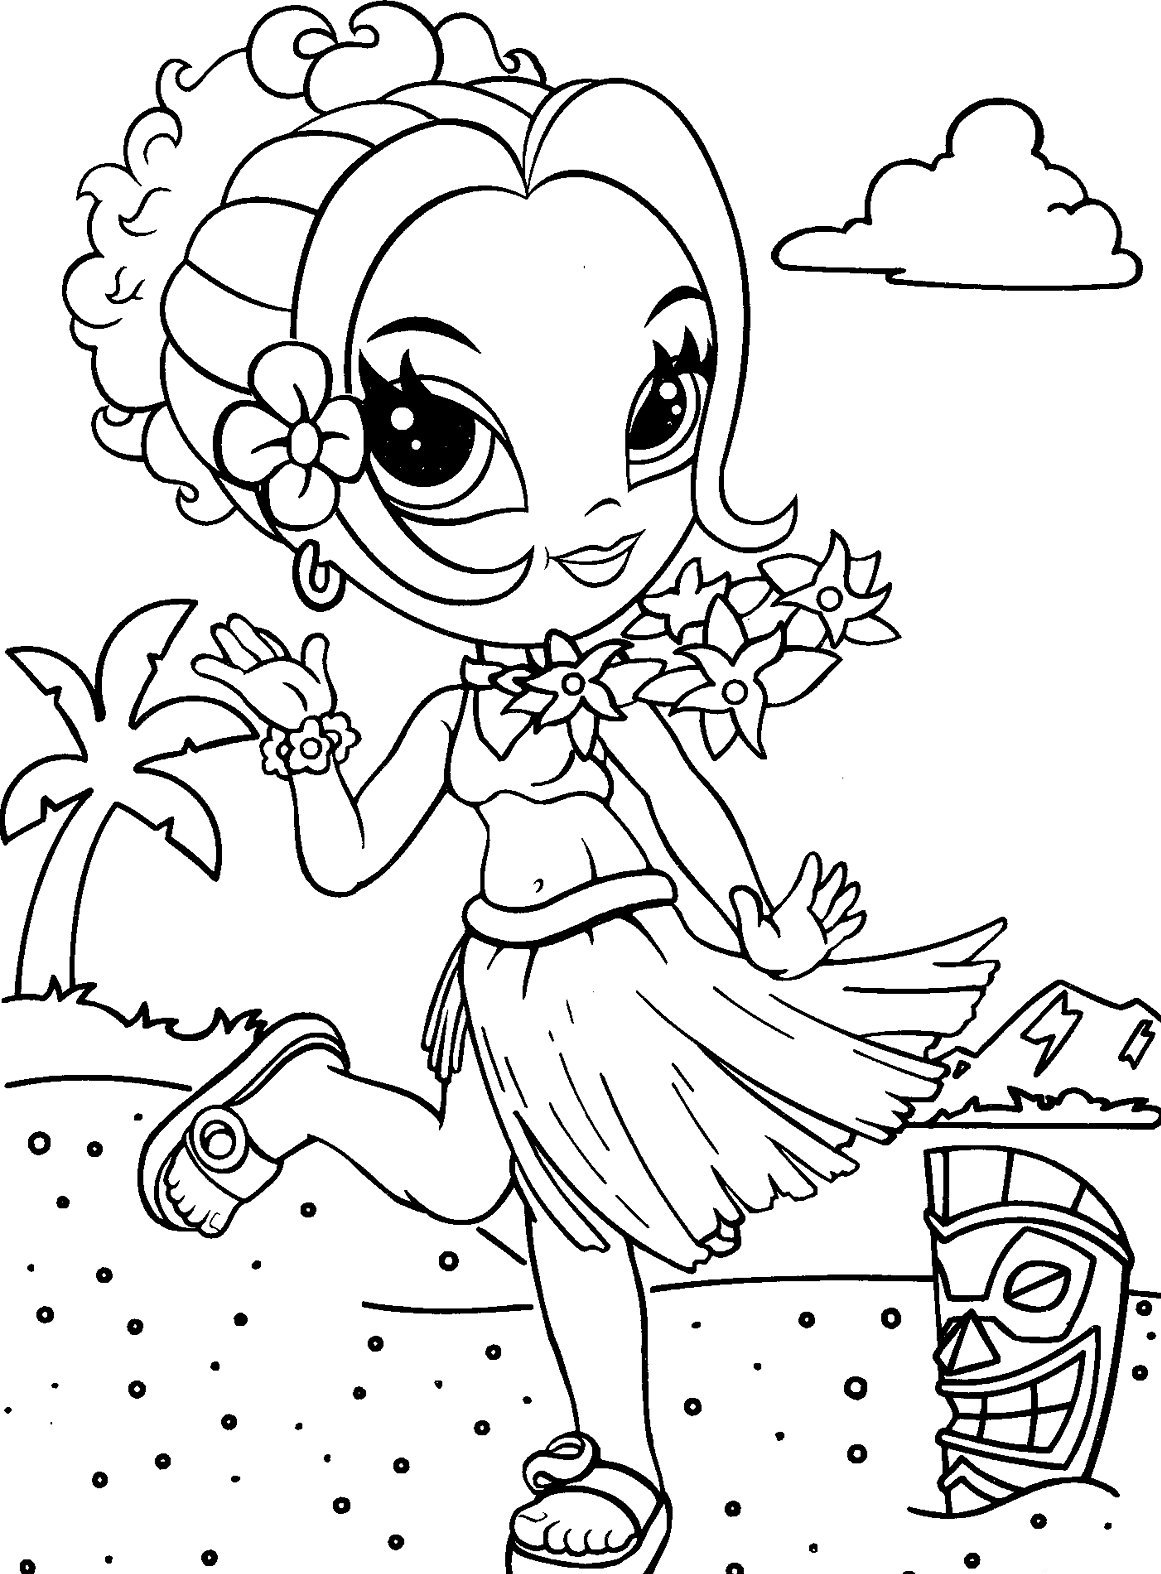 lisa frank coloring pages - Colouring Pages To Print